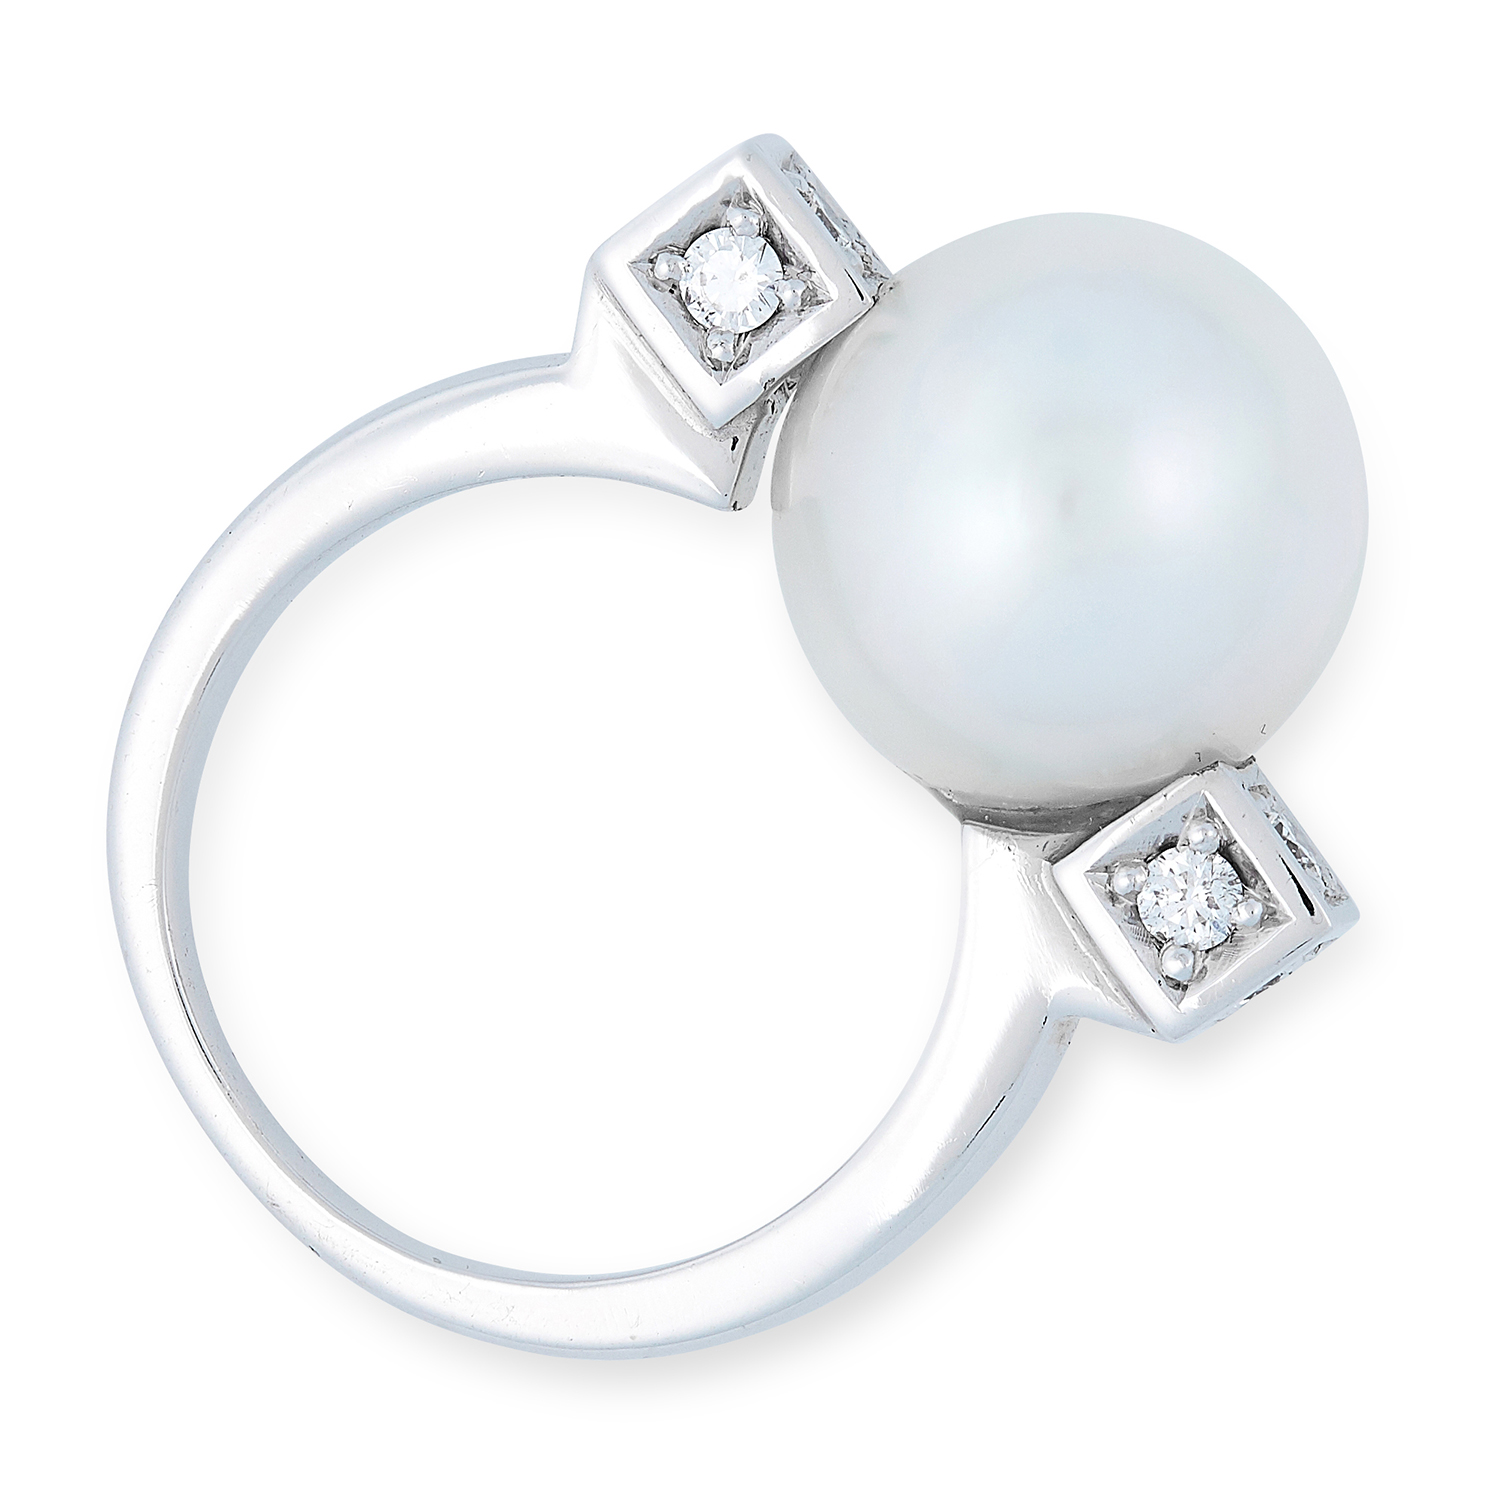 A PEARL AND DIAMOND RING set with a large pearl between round cut diamonds, size J / 5, 9.5g.